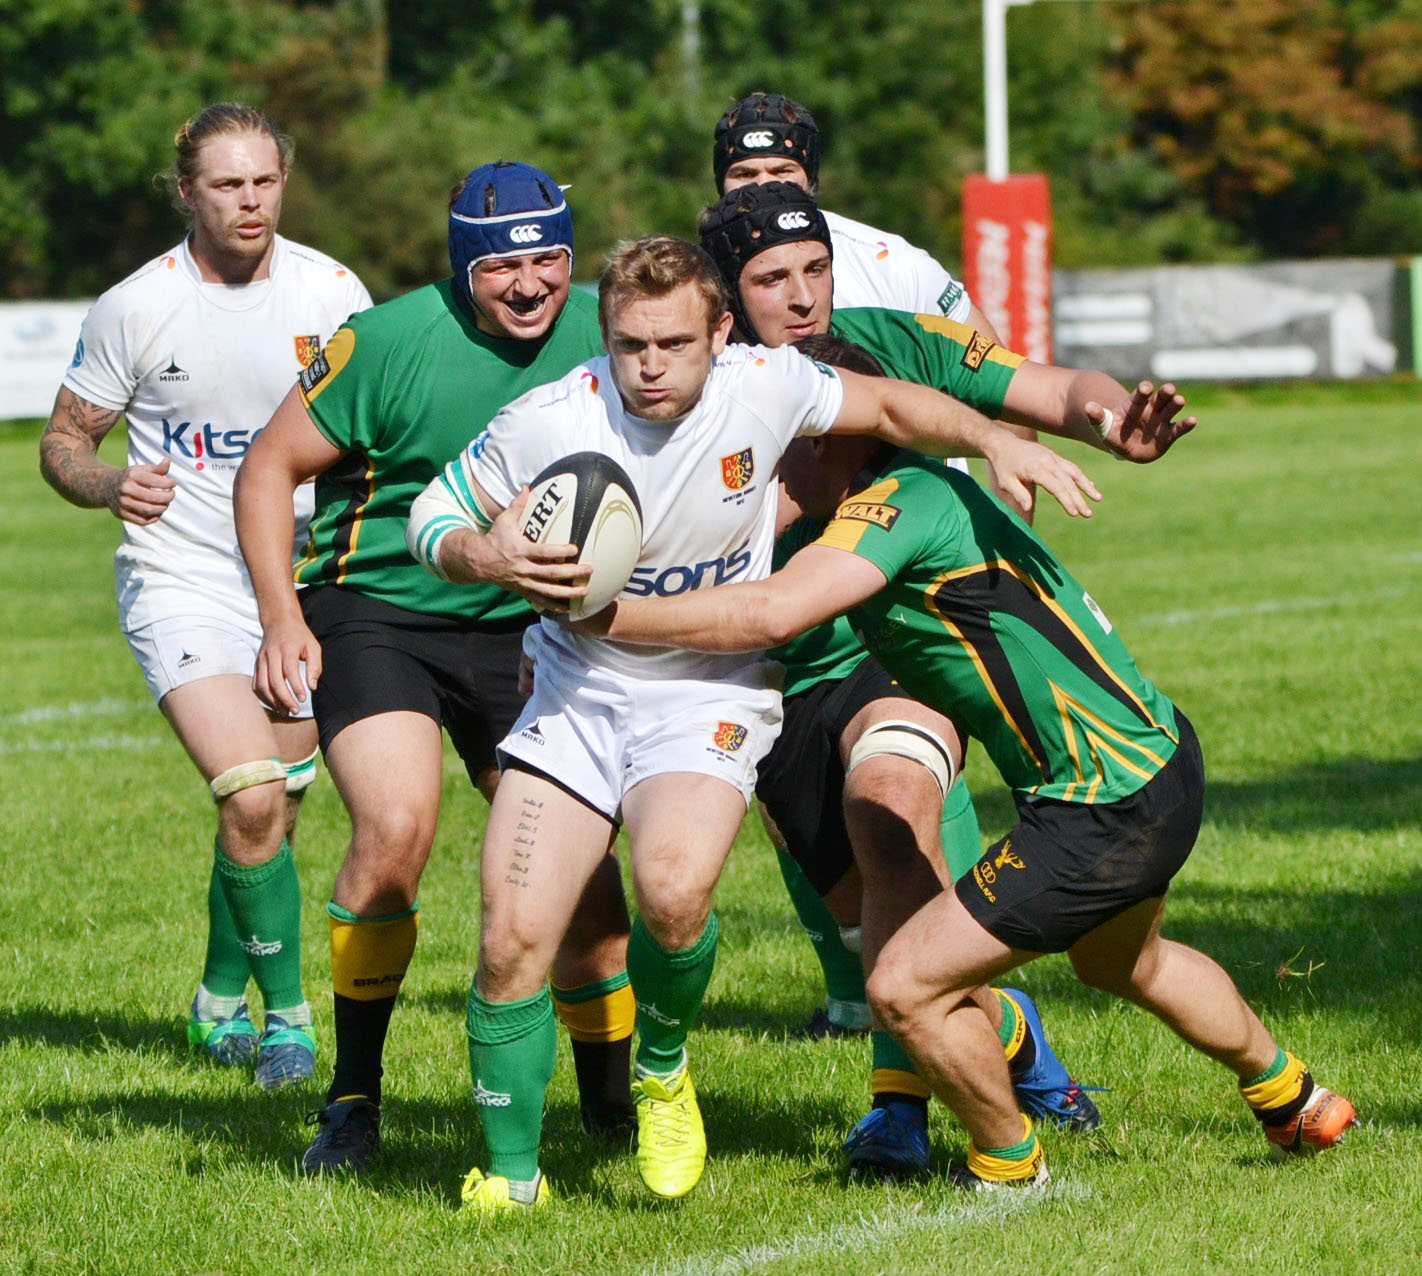 Bracknell (green) were thumped 67-12 by Newton Abbot